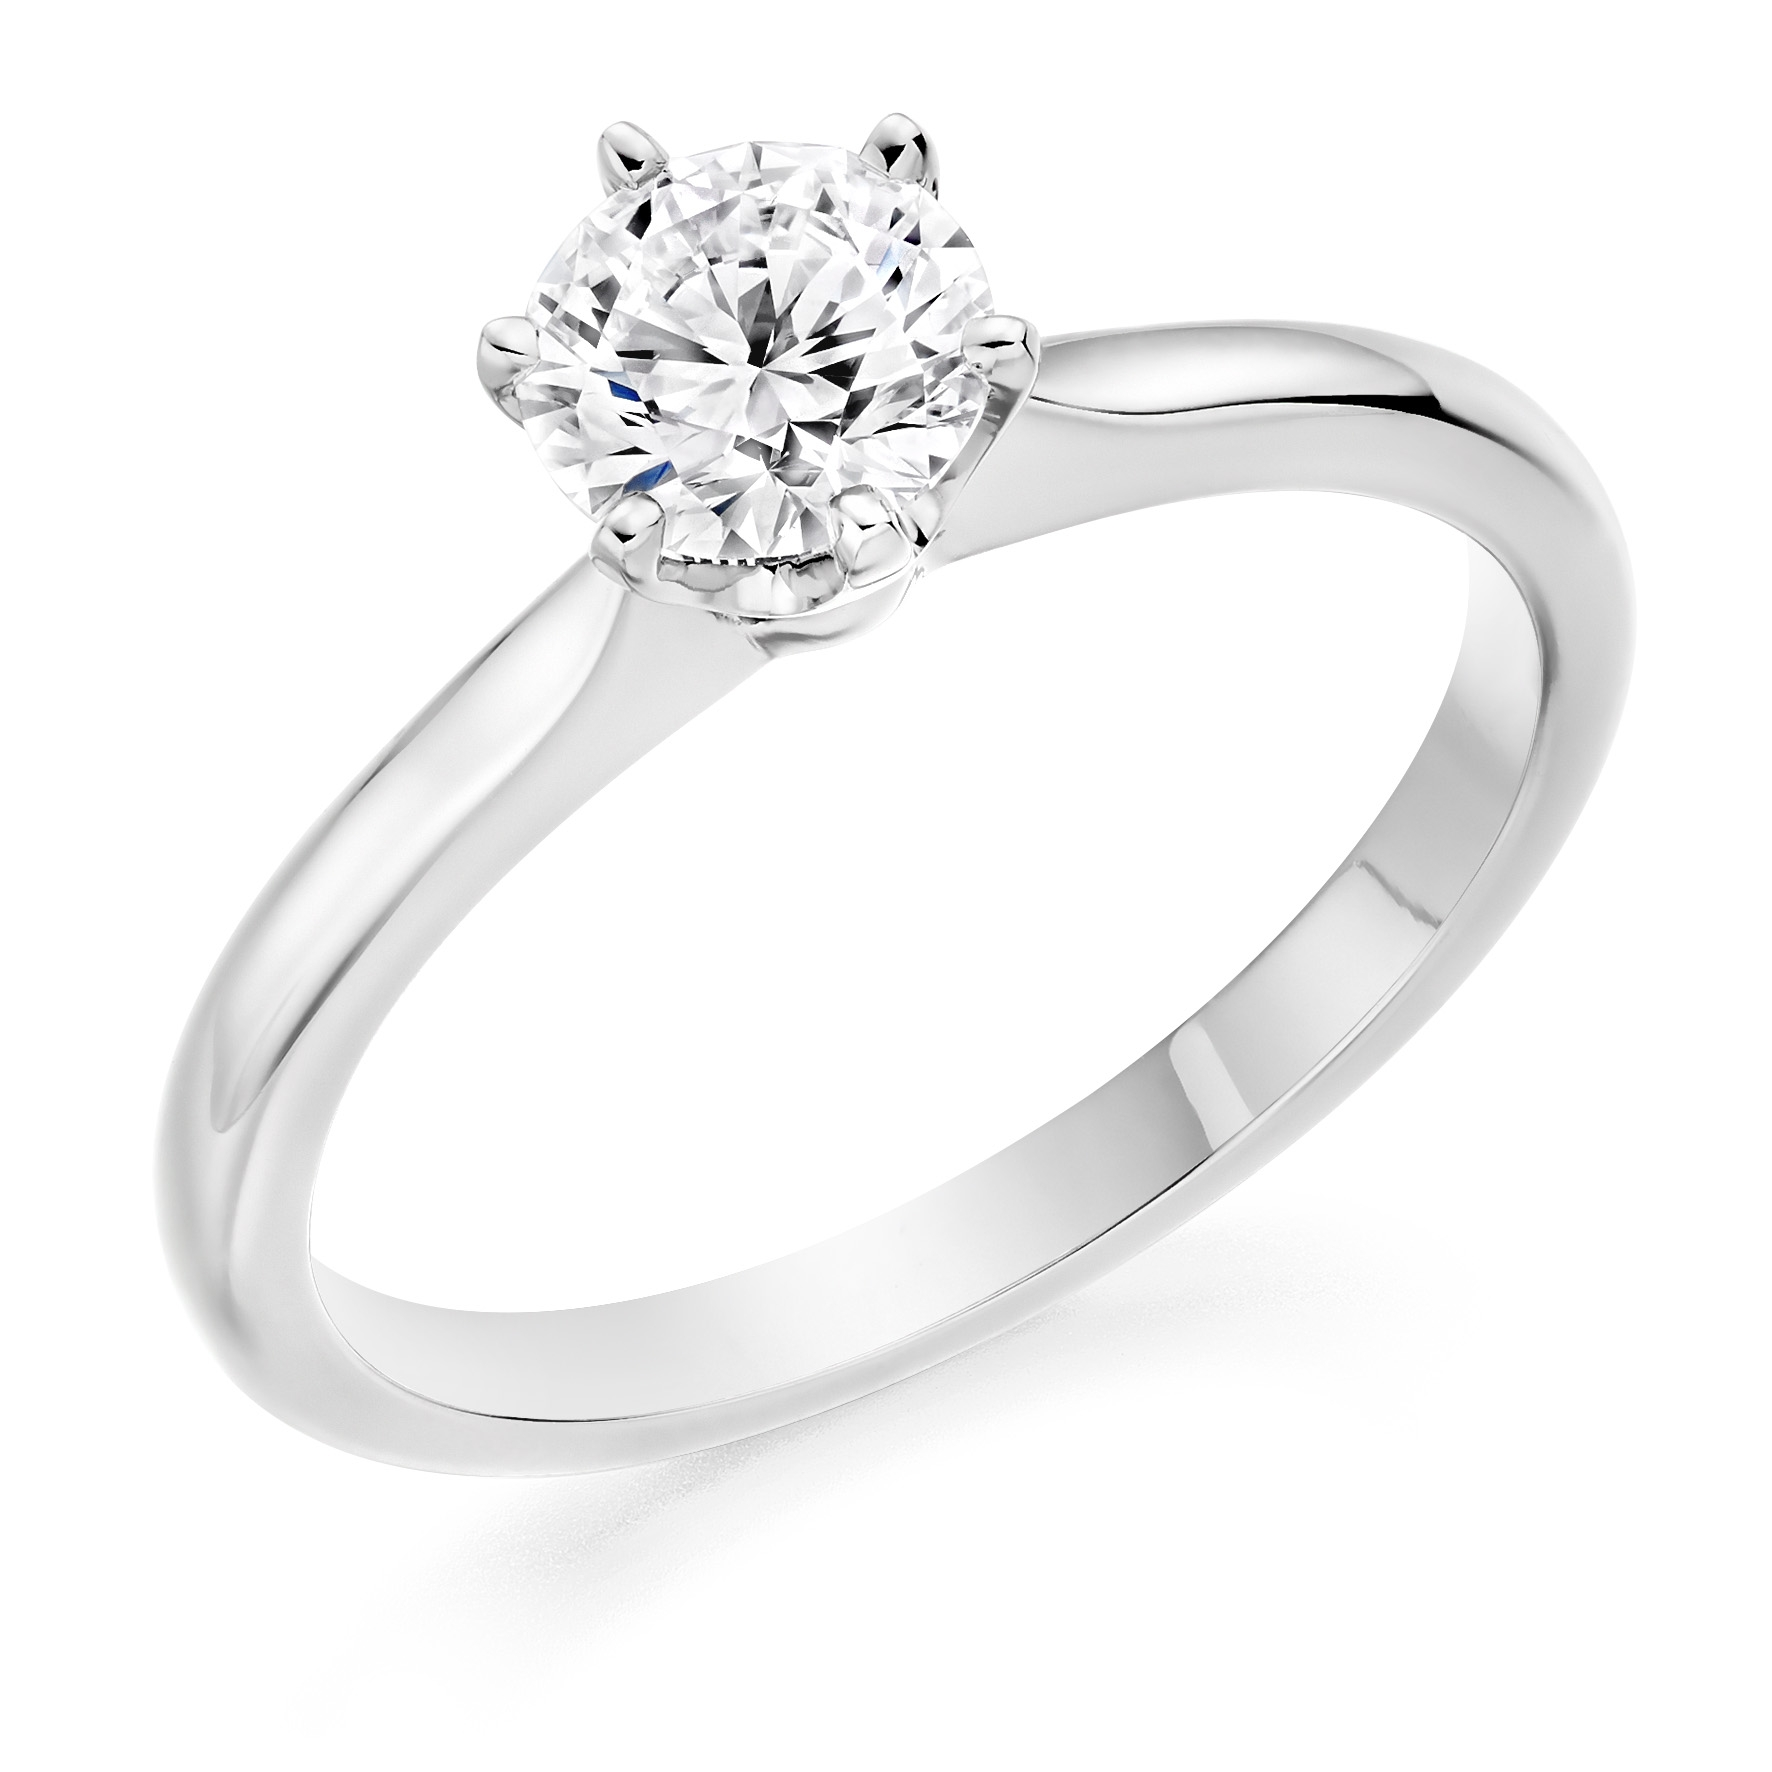 Vittoria Engagement Ring in Hatton Garden